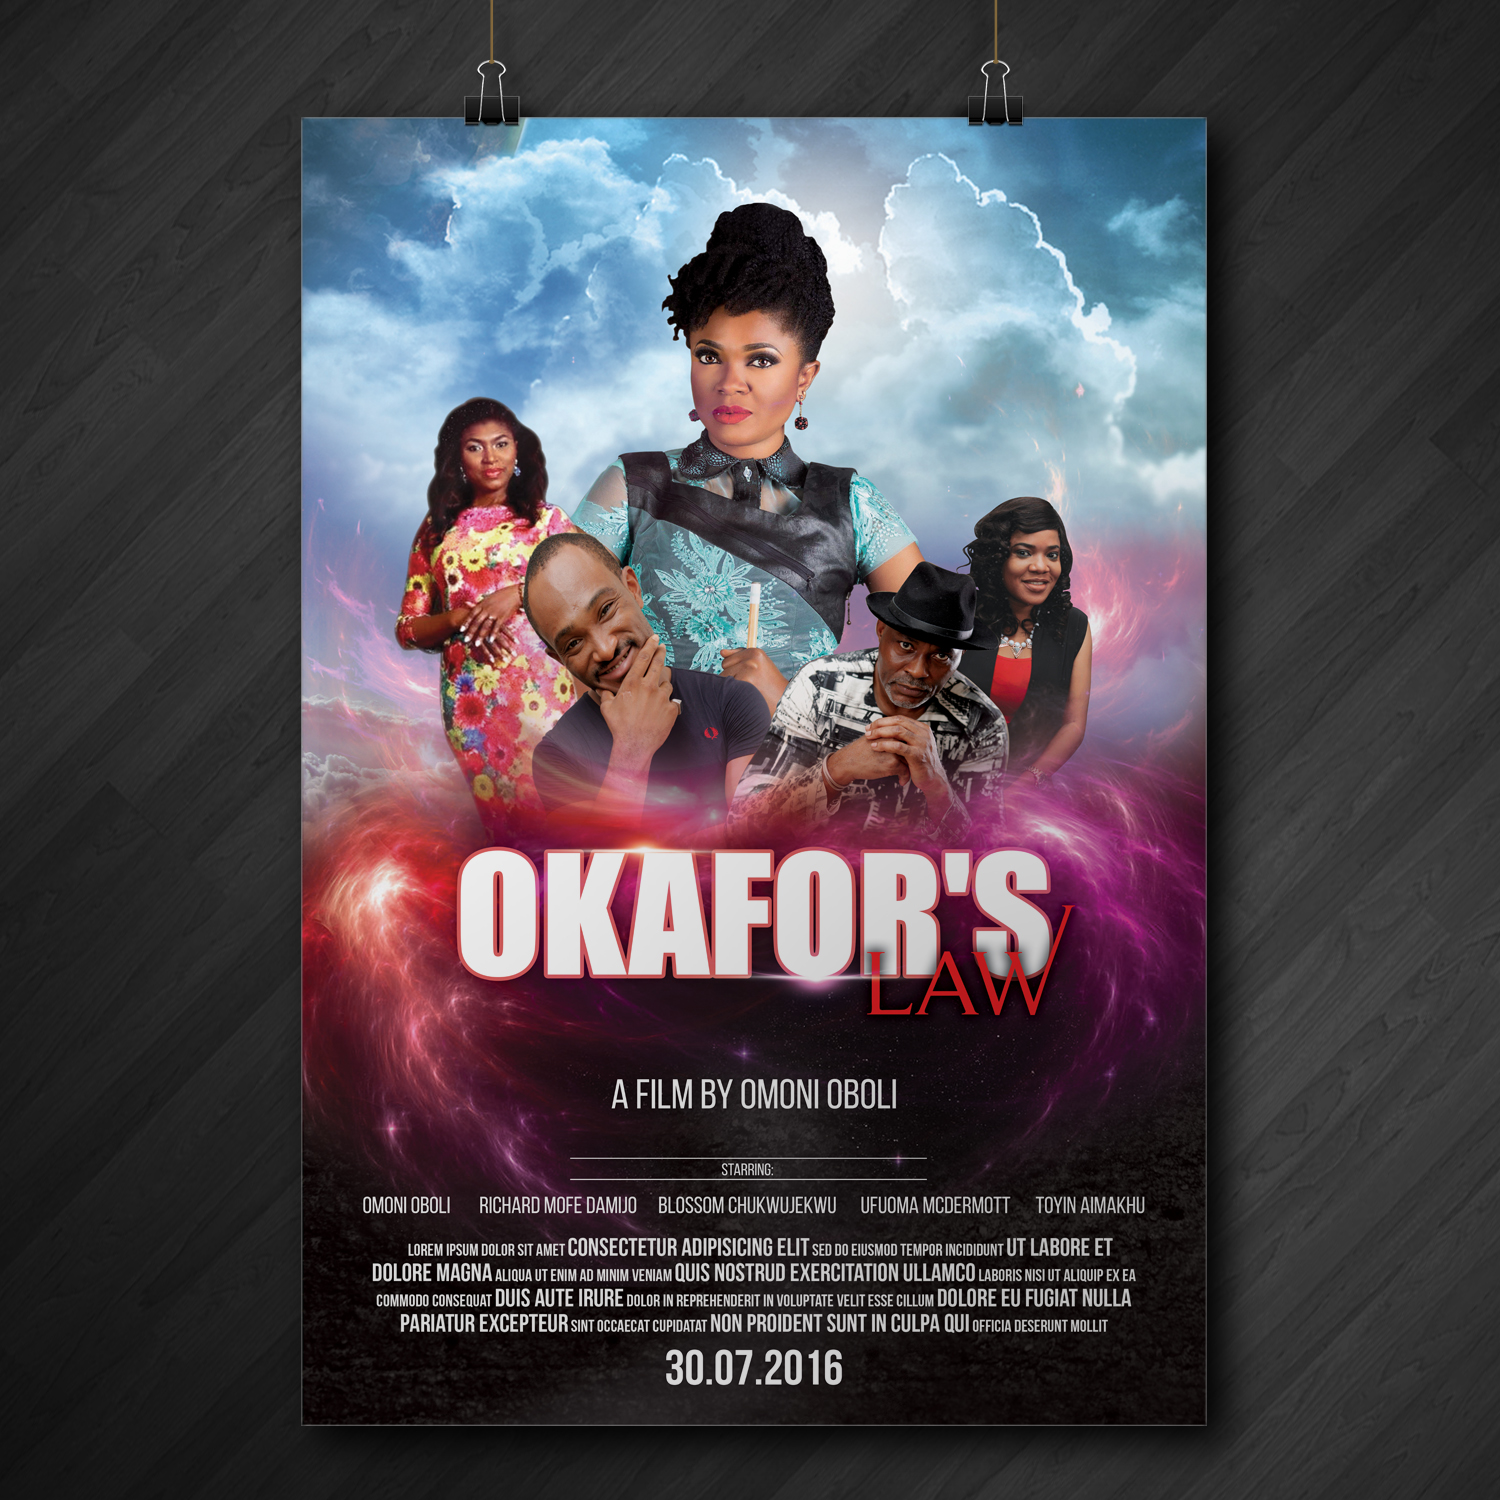 Poster design needed - Poster Design By Kreative Fingers For Movie Poster Design Needed High Quality Hollywood Style